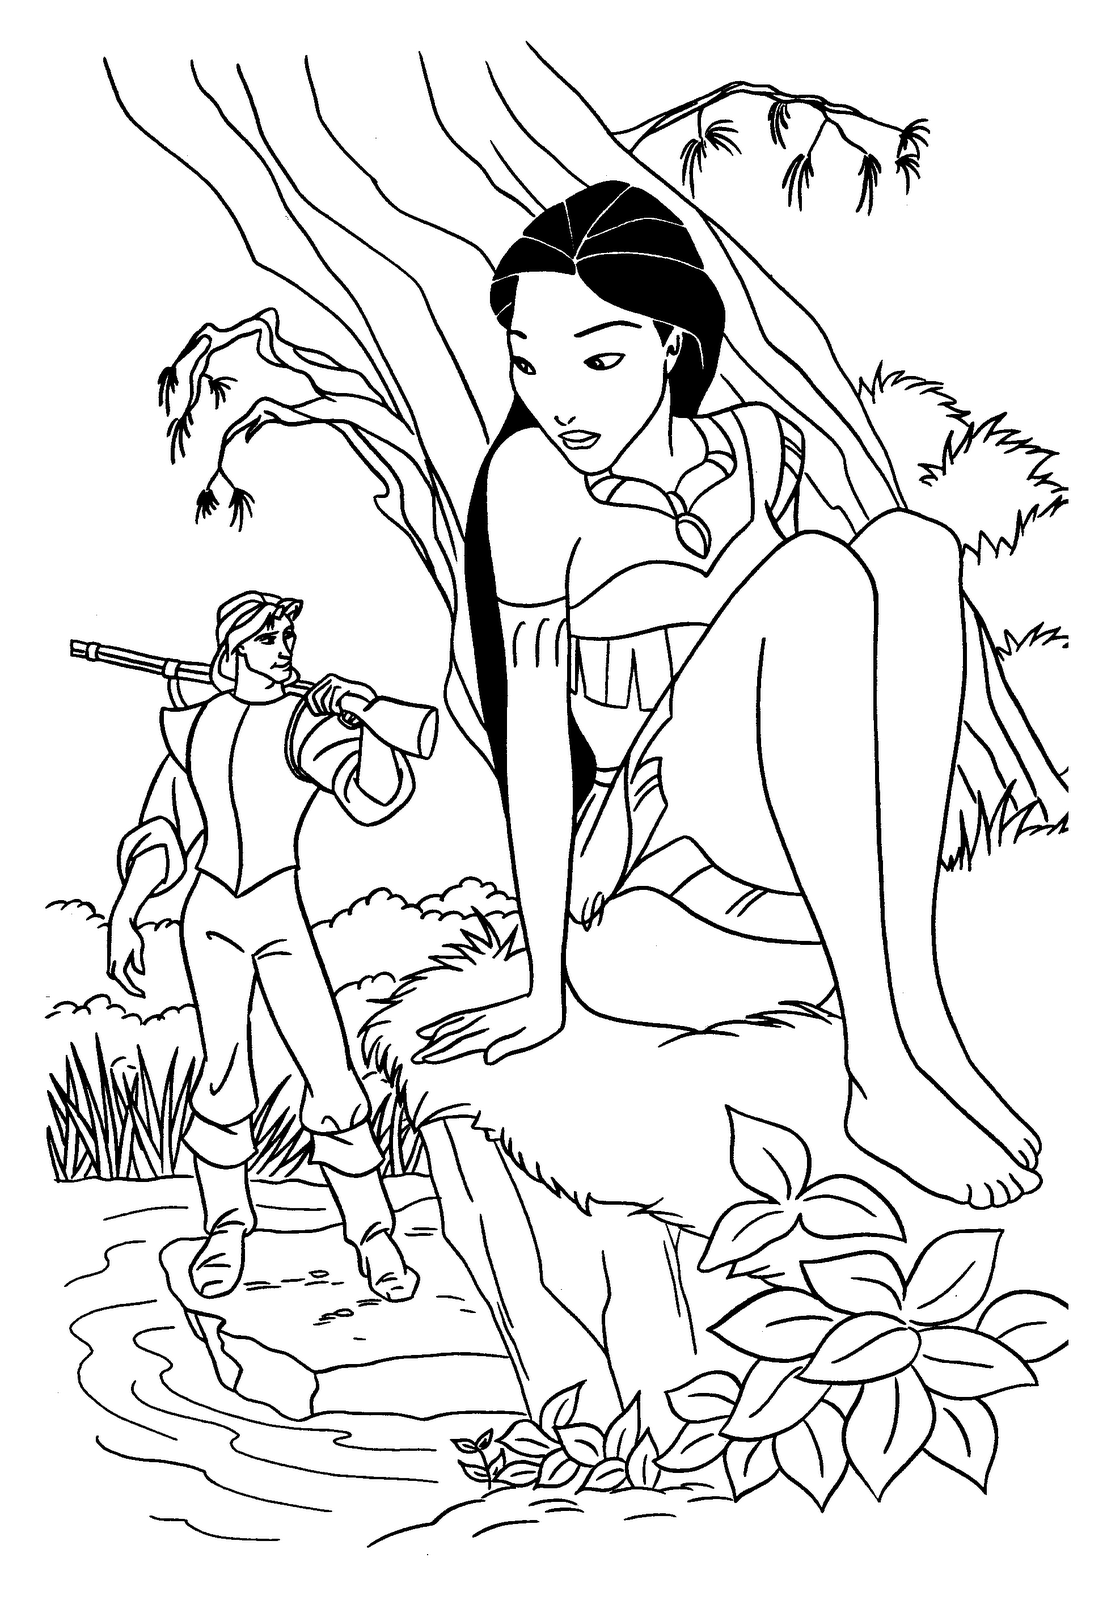 Coloring Pages For Kids Disney Princess Pocahontas